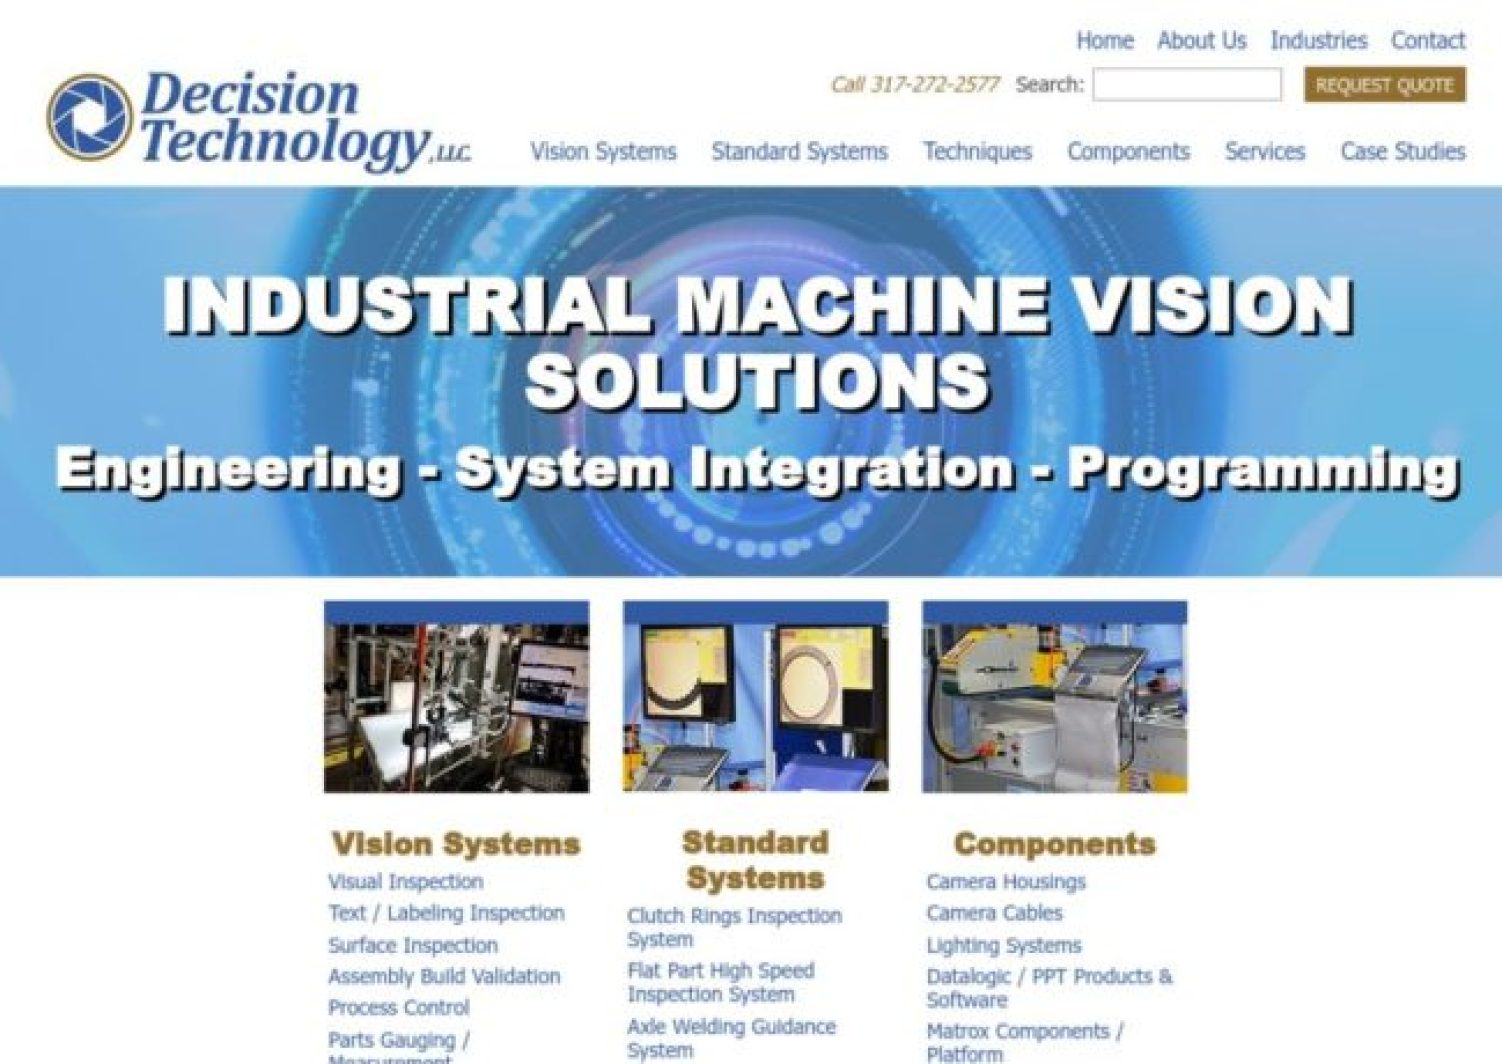 More Machine Vision Manufacturer Listings